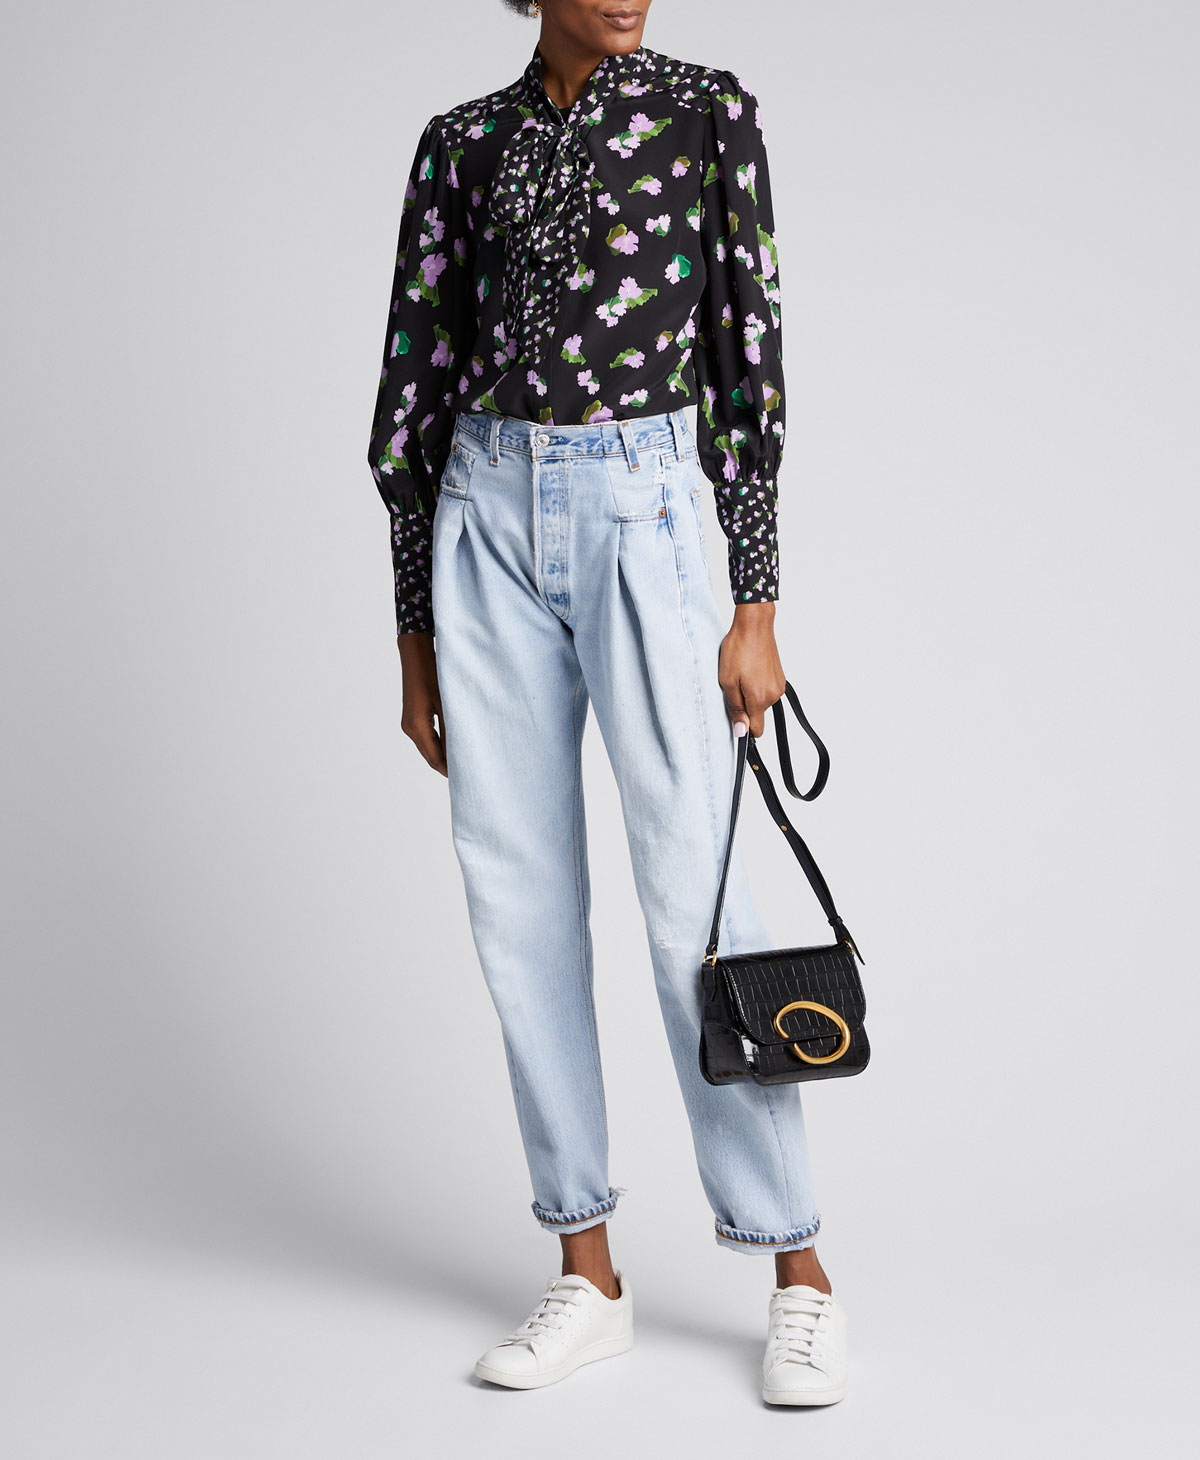 Tanya Taylor Tops SUSAN FLORAL-PRINT SILK TOP WITH NECK TIE